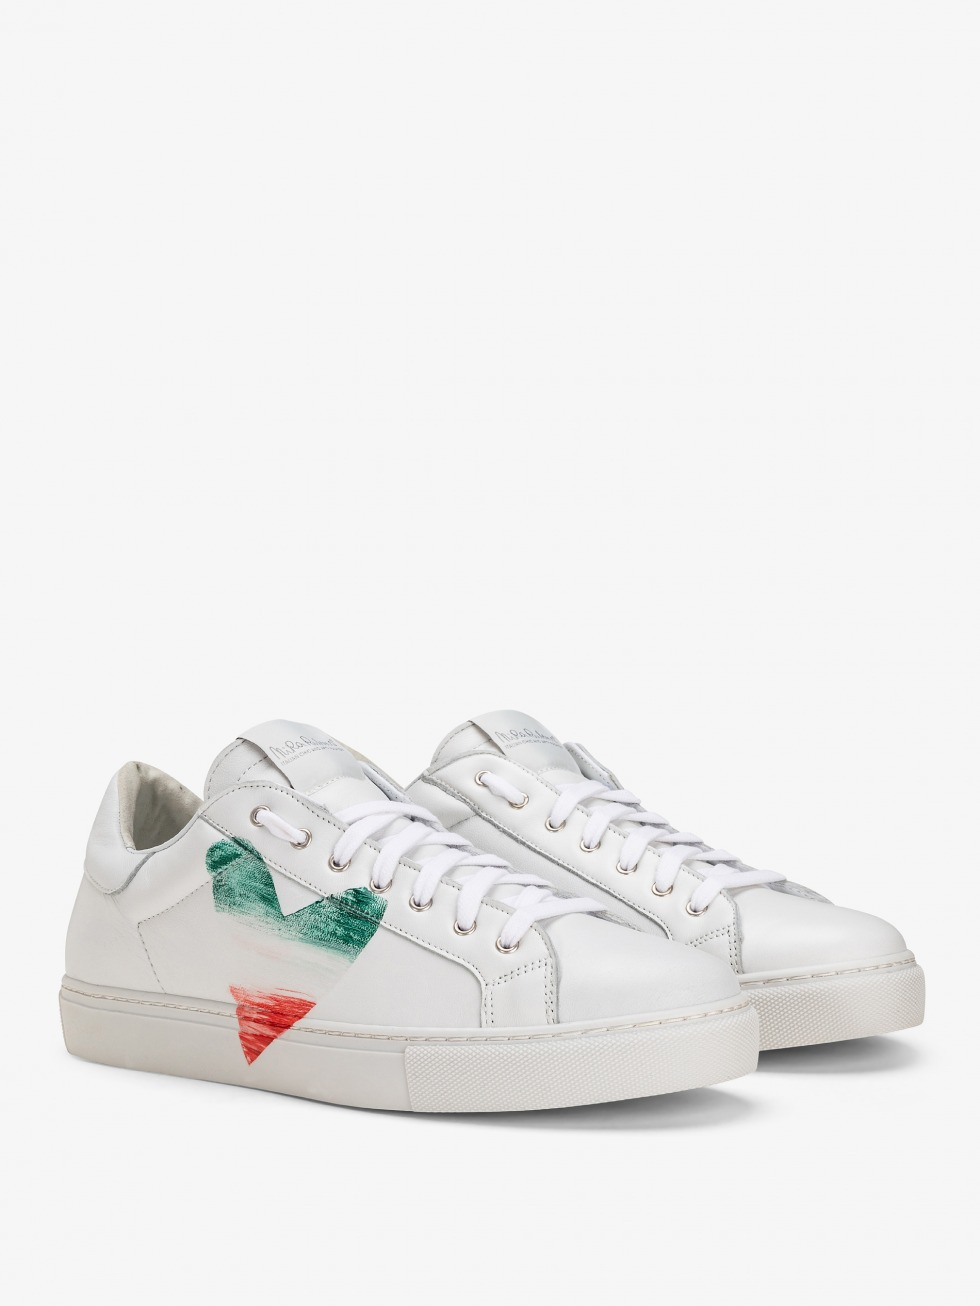 Martini Sneakers M - Flag Italy Heart